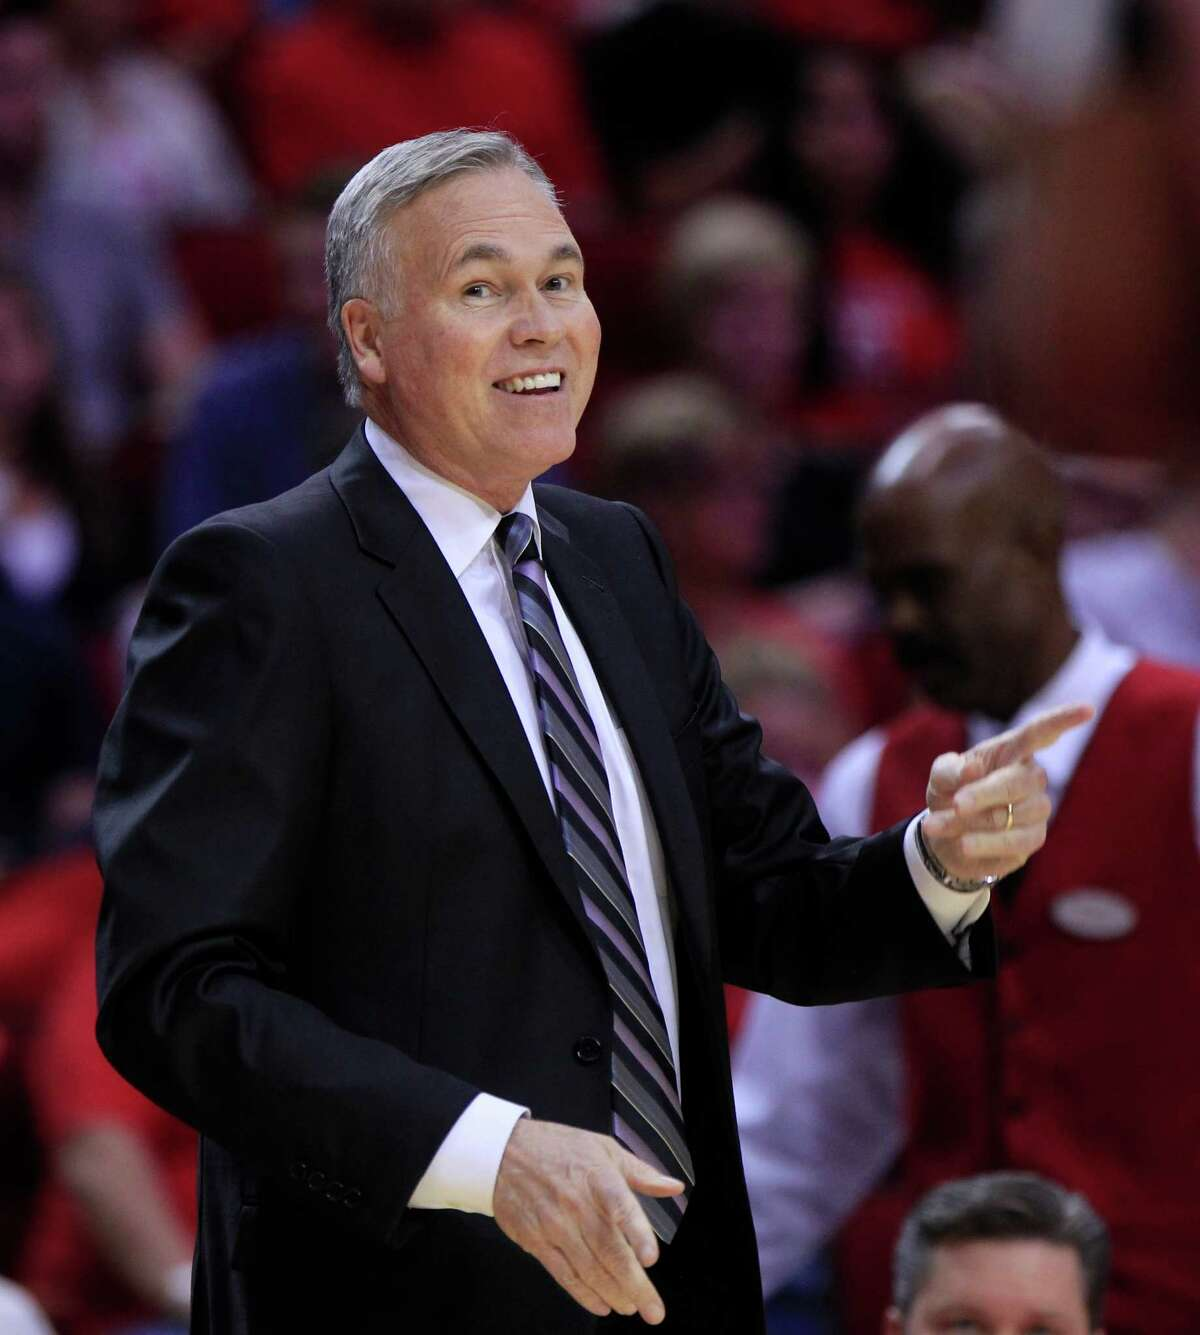 Rockets head coach Mike D'Antoni talks to his team during the Houston Rockets game against the Dallas Mavericks at the Toyota Center, Sunday, Oct. 30, 2016, in Houston.